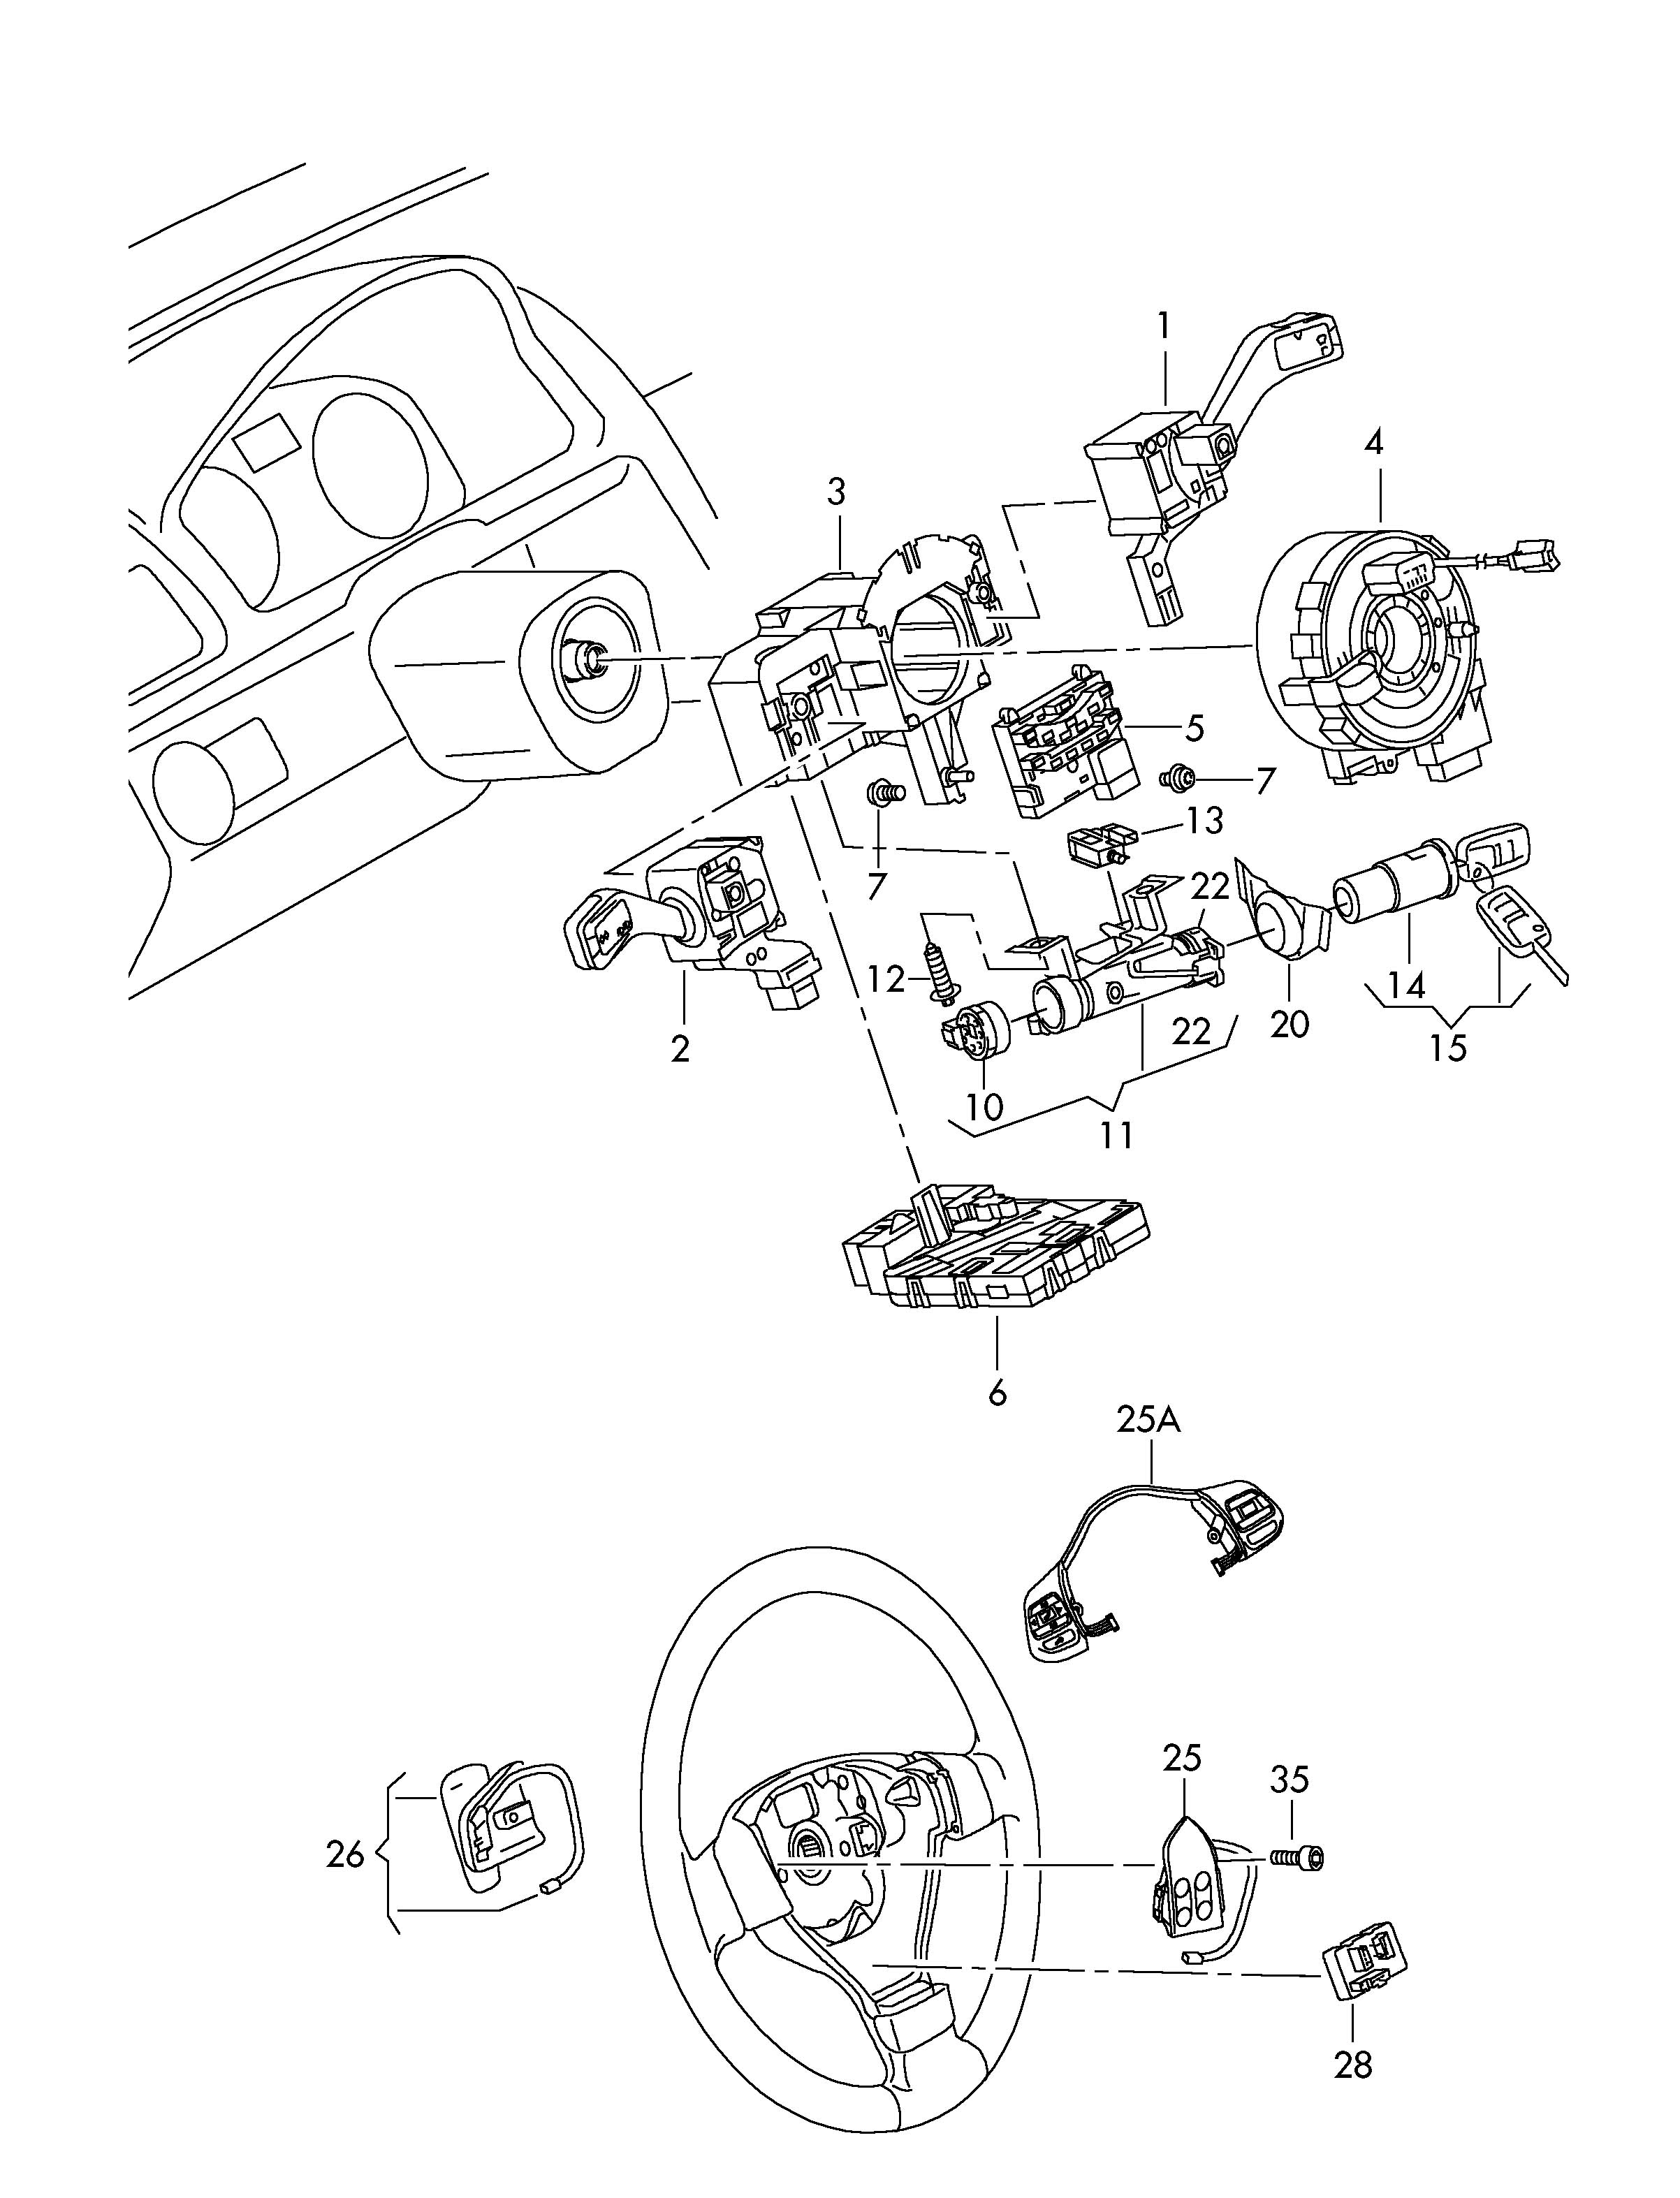 vw golf mk1 headlight wiring diagram dusk to dawn light volkswagen rabbit ignition switch